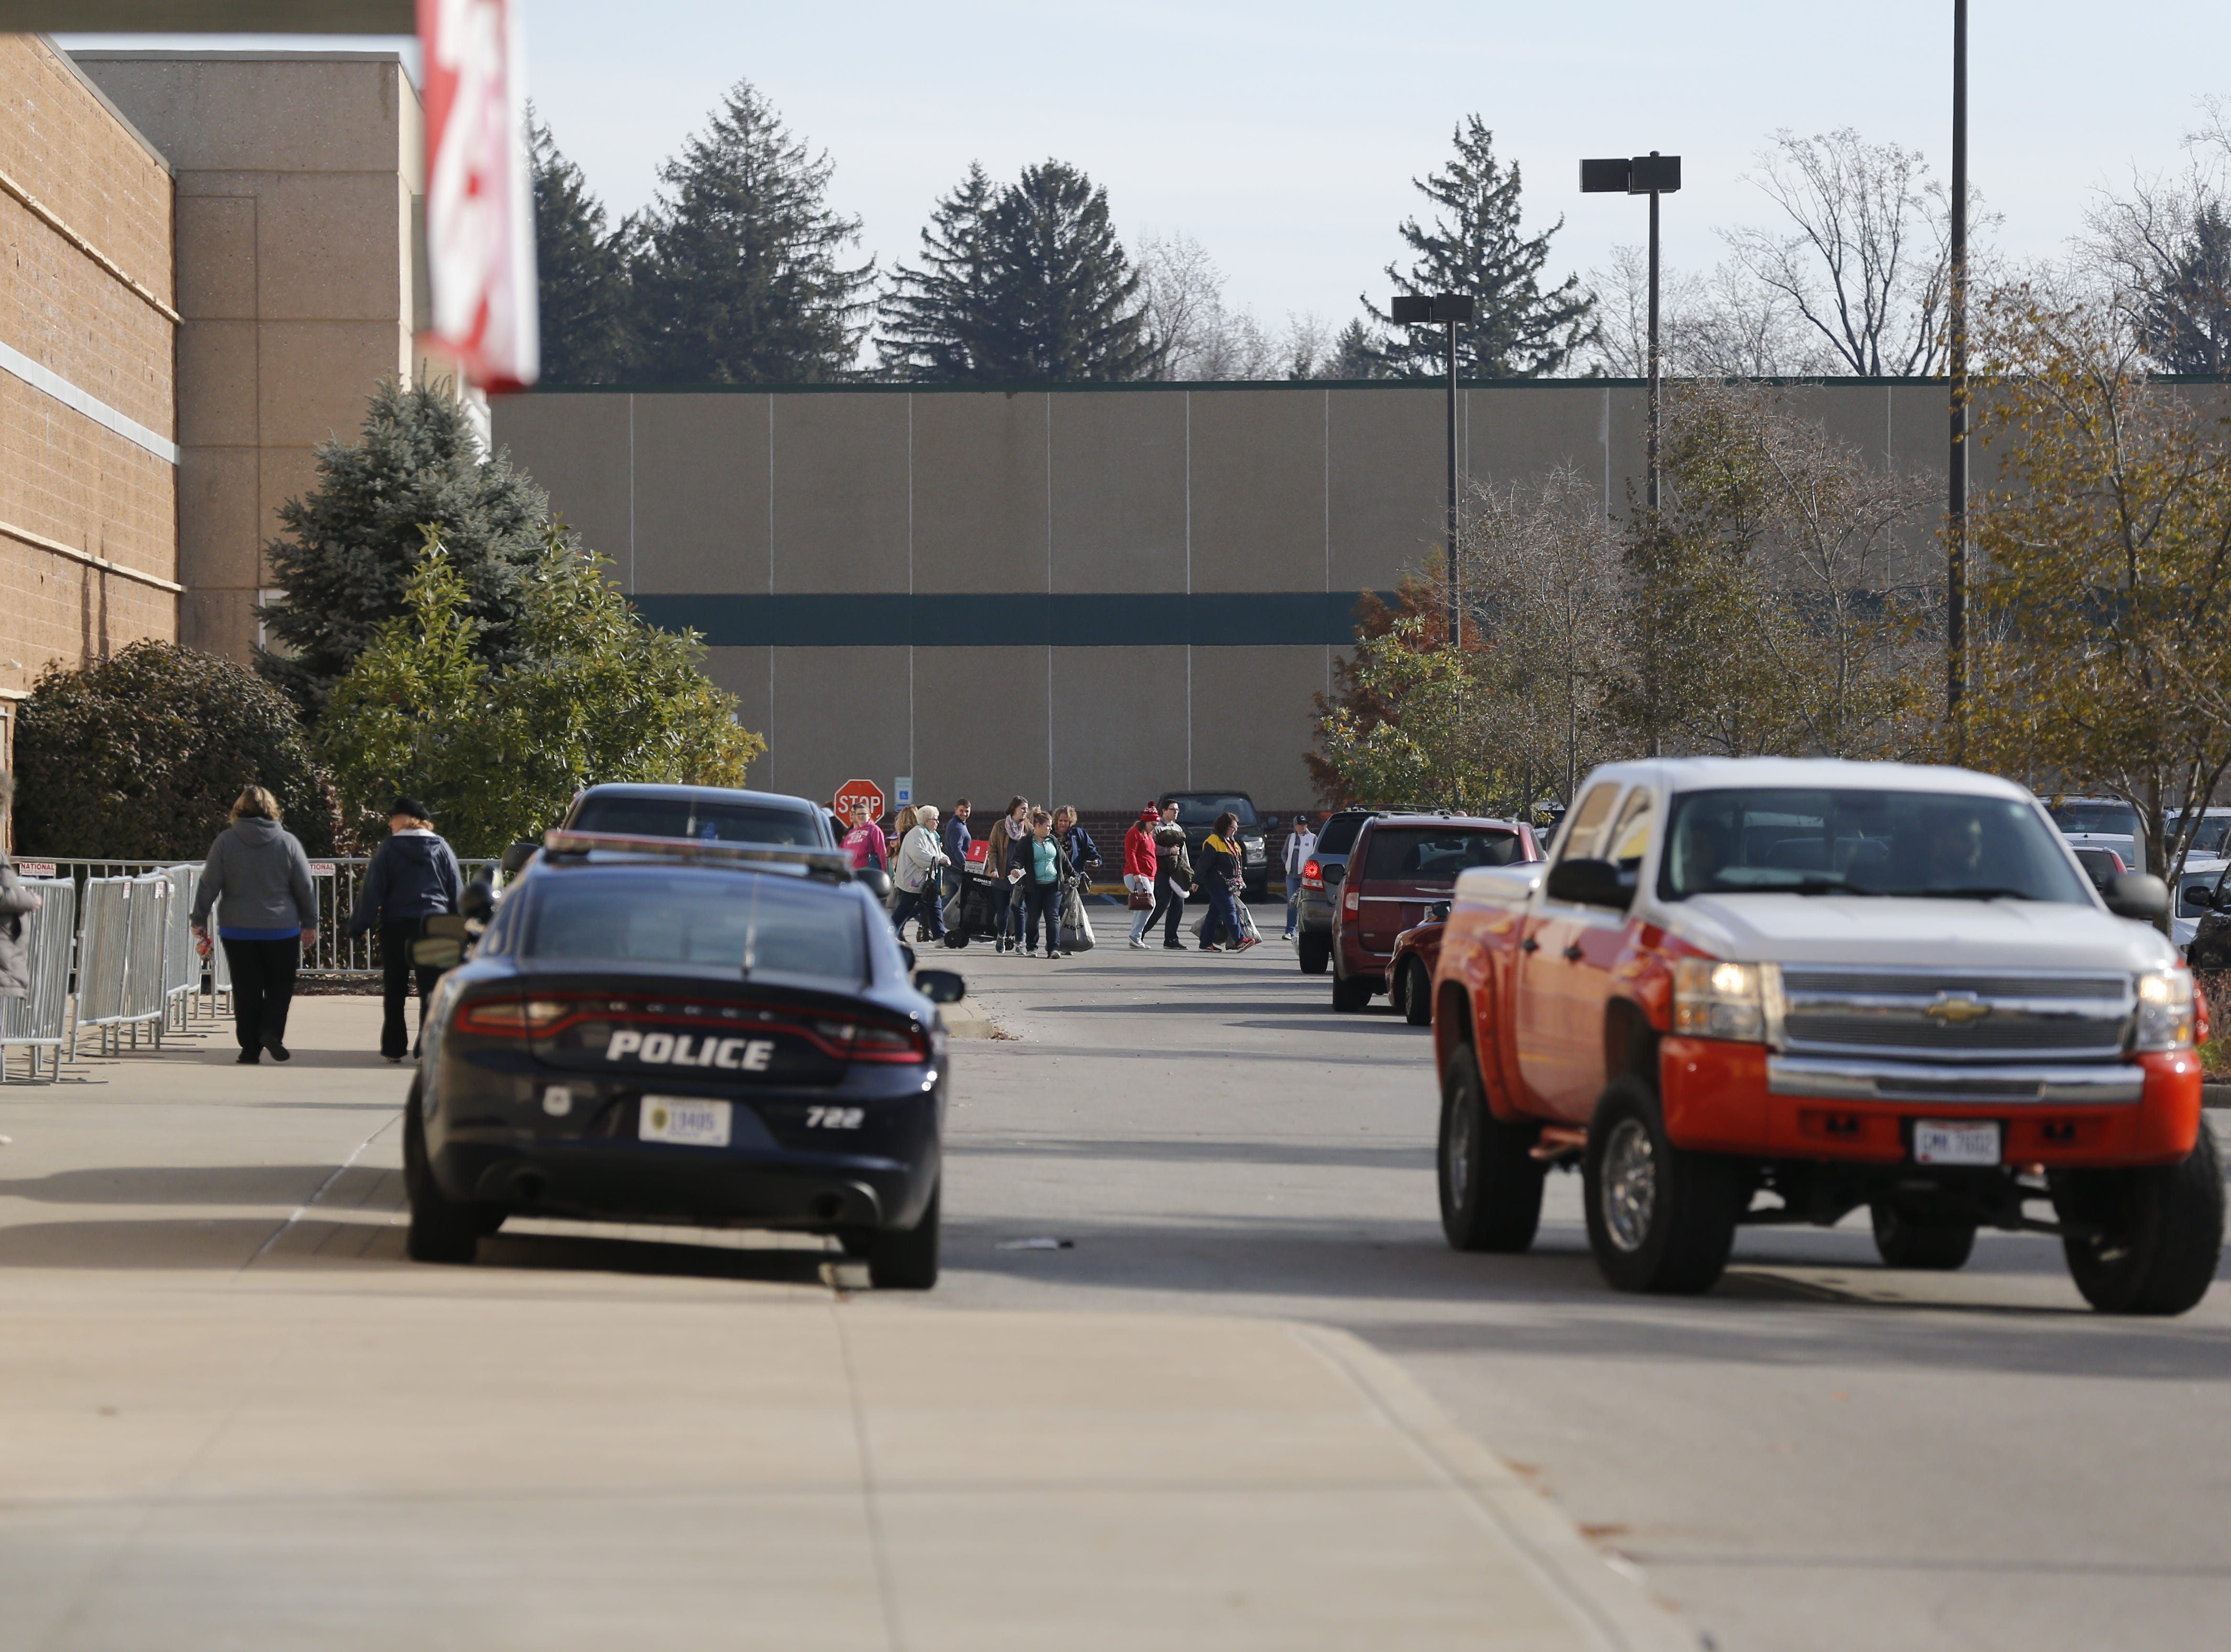 A stream of shoppers pours from the Richmond Kohl's store after taking advantage of Black Friday deals on Nov. 23, 2018.